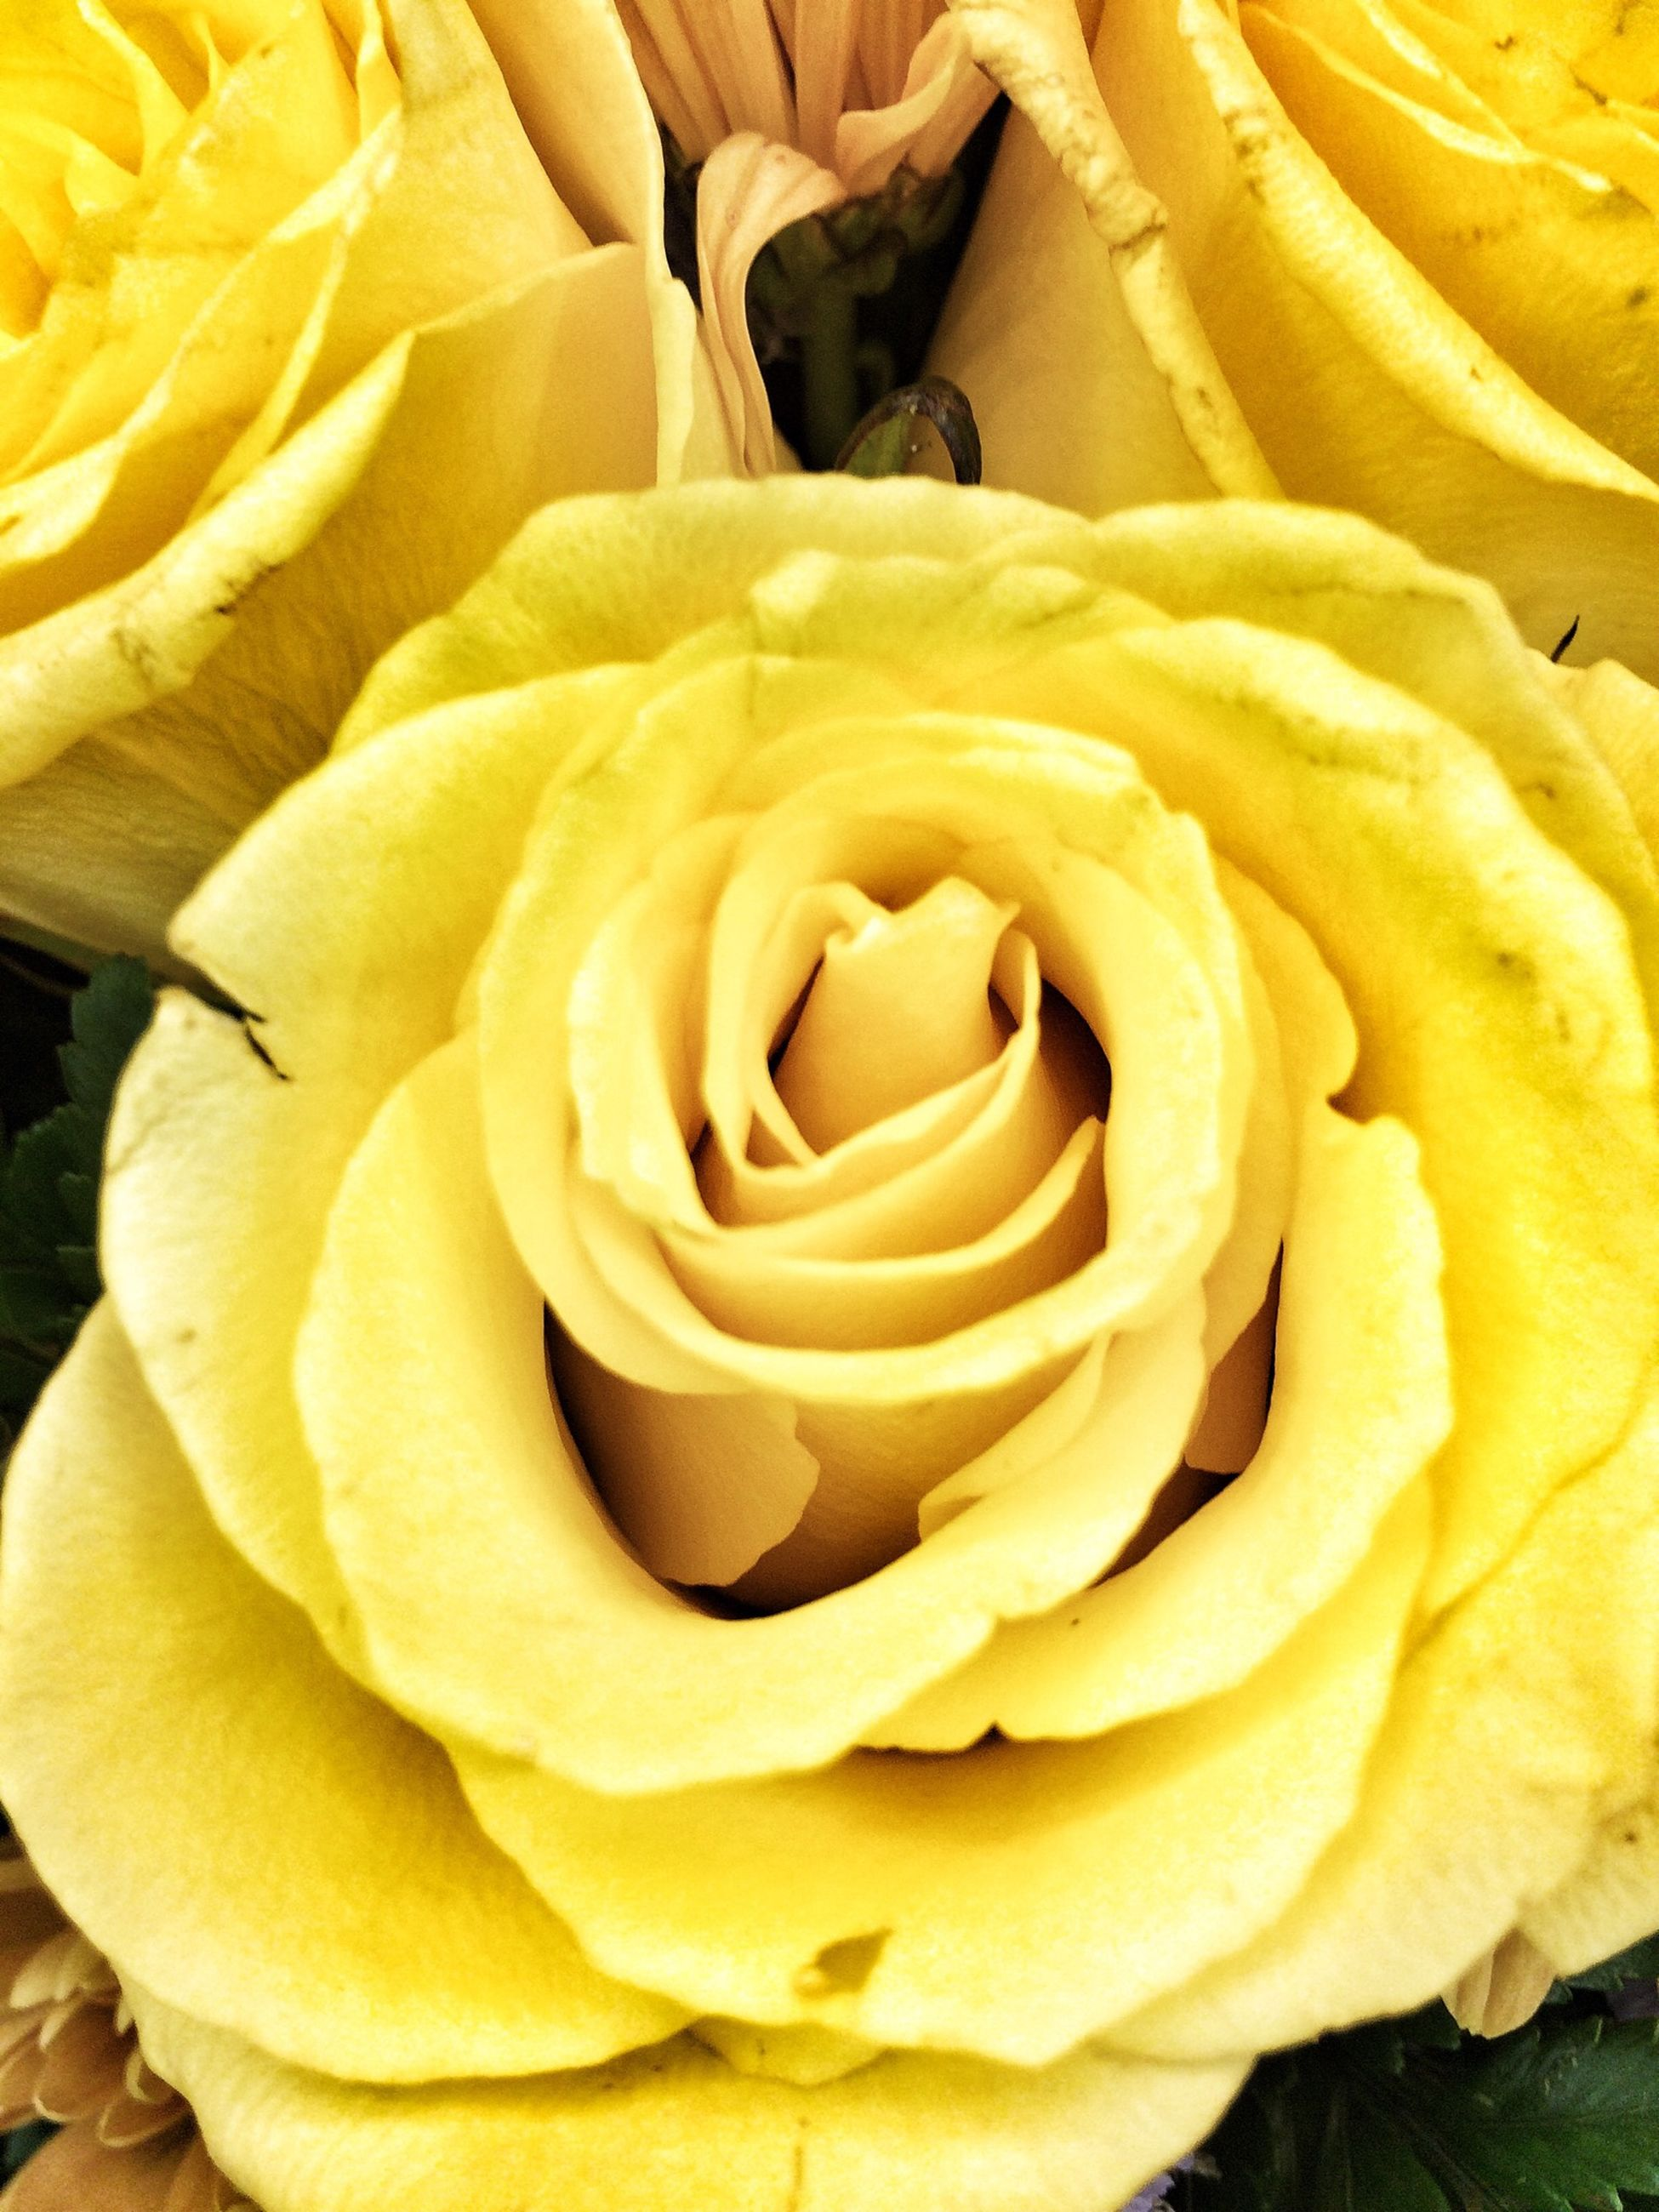 flower, petal, flower head, freshness, rose - flower, fragility, yellow, beauty in nature, close-up, growth, full frame, nature, single flower, blooming, backgrounds, natural pattern, rose, high angle view, in bloom, single rose